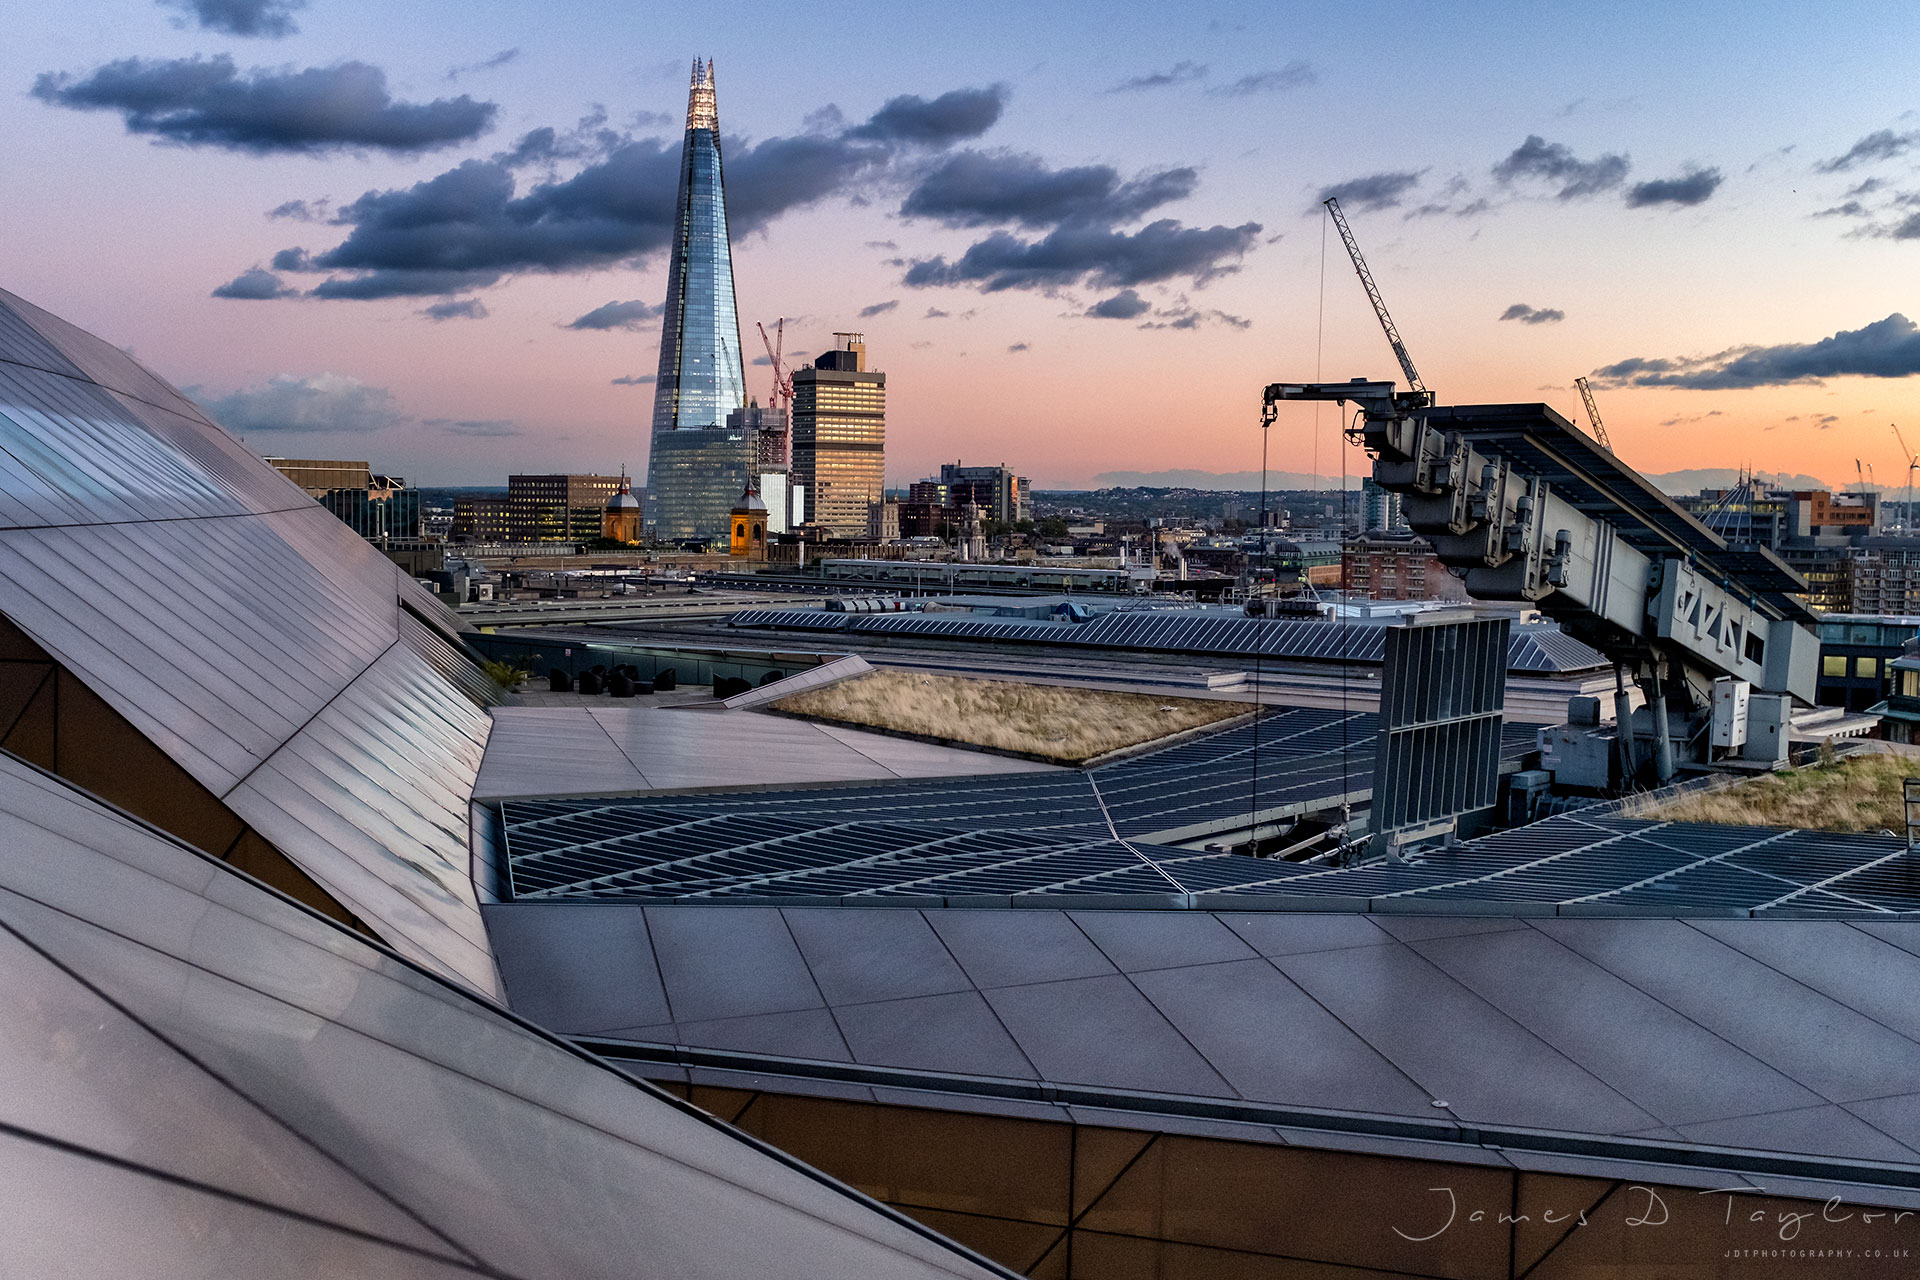 jdtphotography.co.uk rooftop view shard